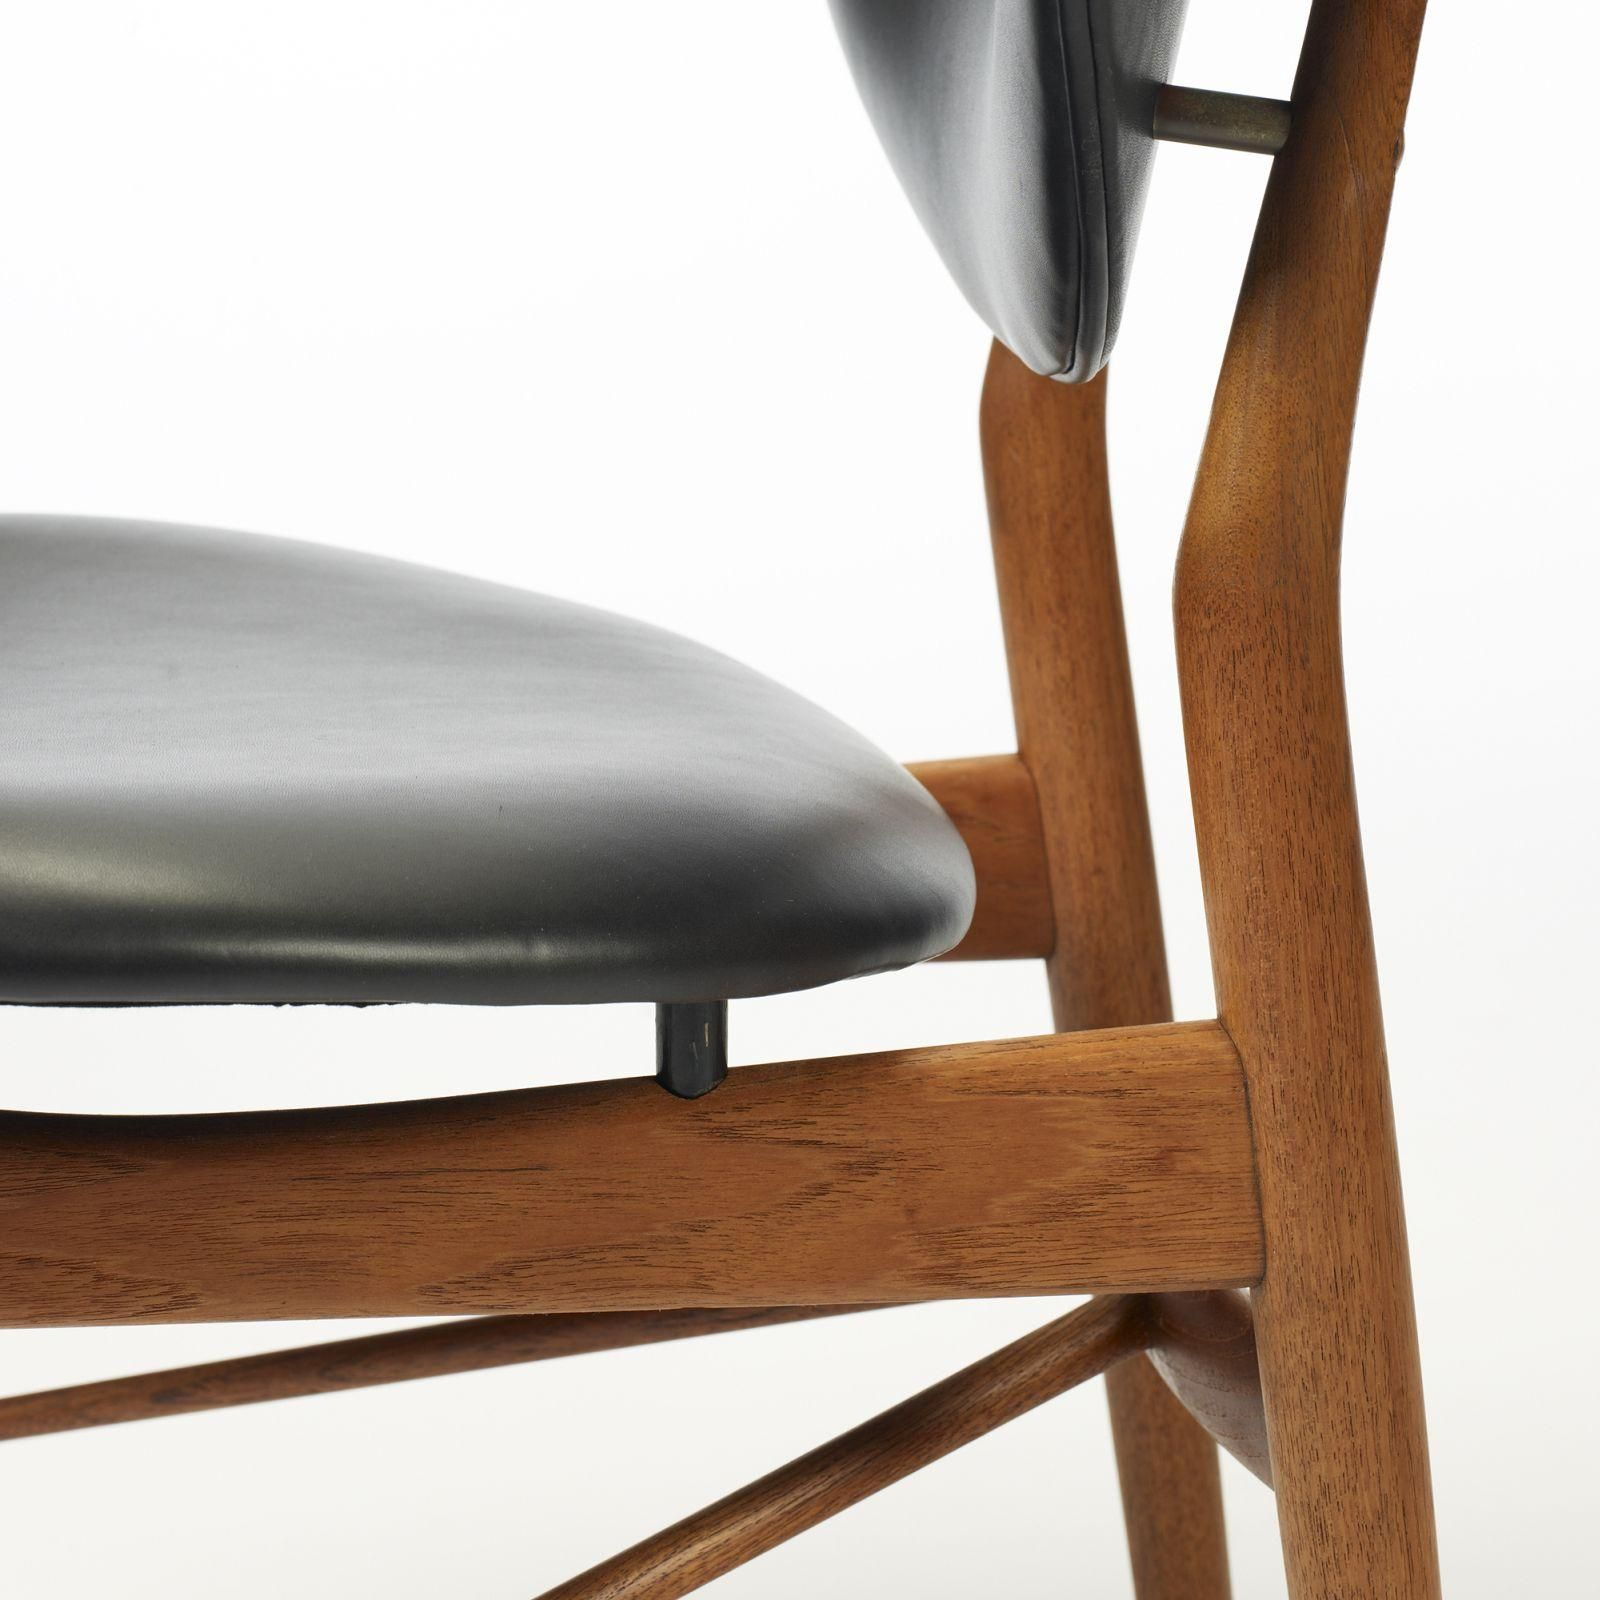 Mod108 Dining Chairs Finn Juhl Chair Wooden Chair Joinery Details